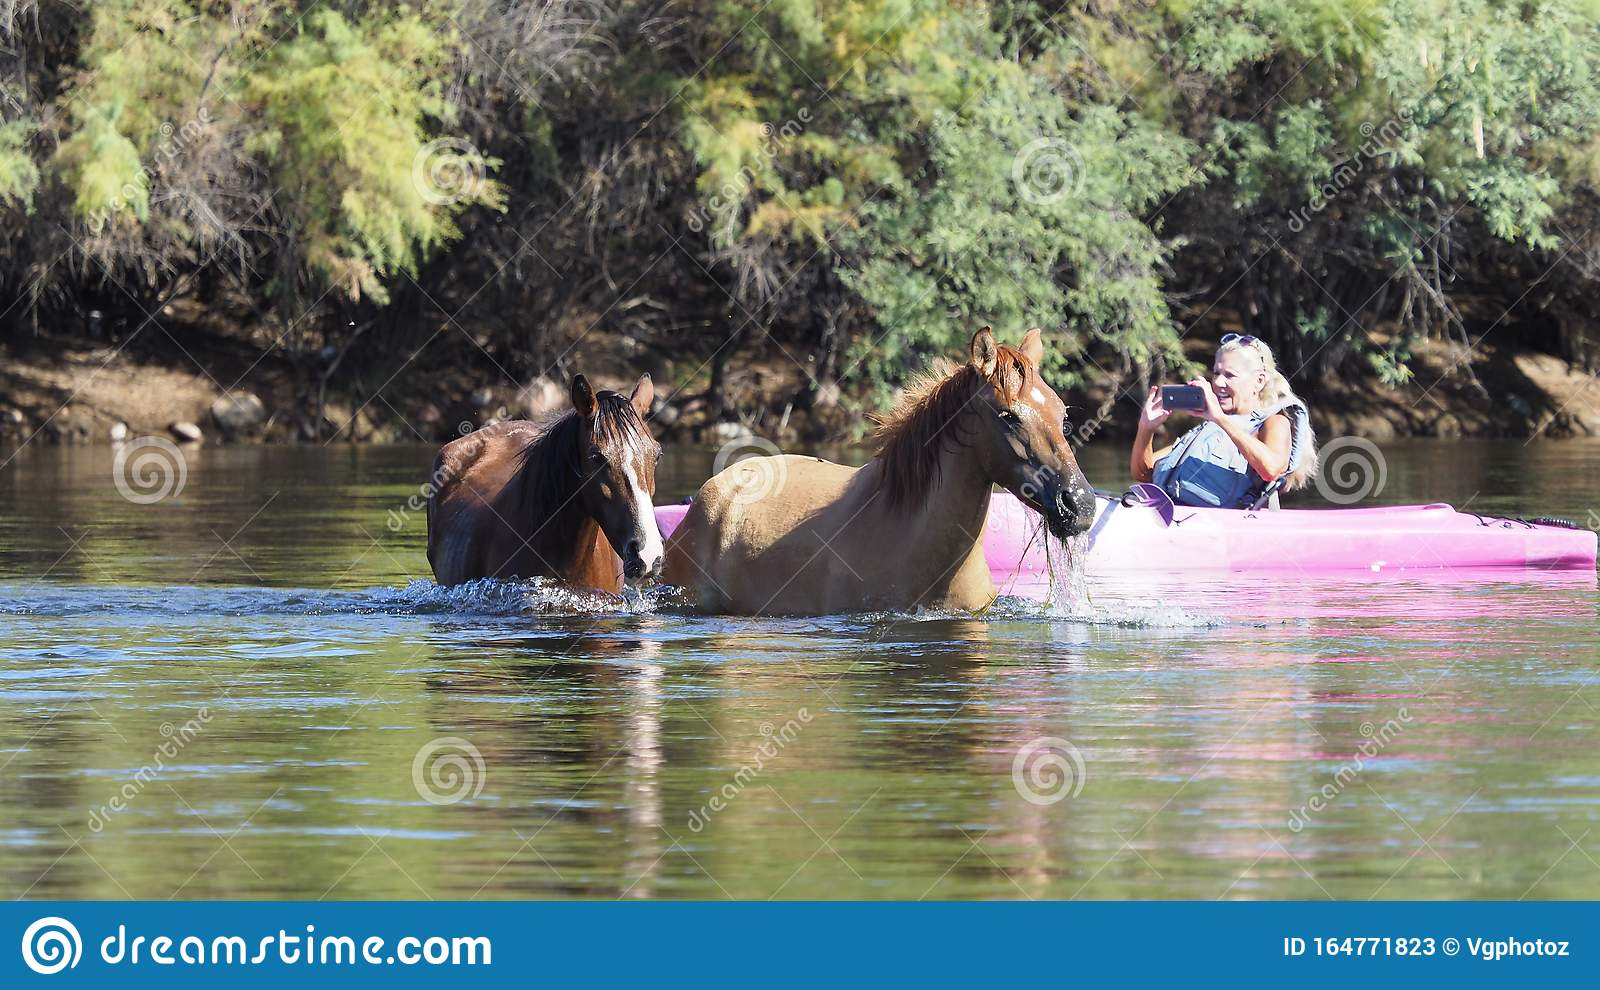 A Wild River Ride Stock Image Image Of Summer Horses 164771823